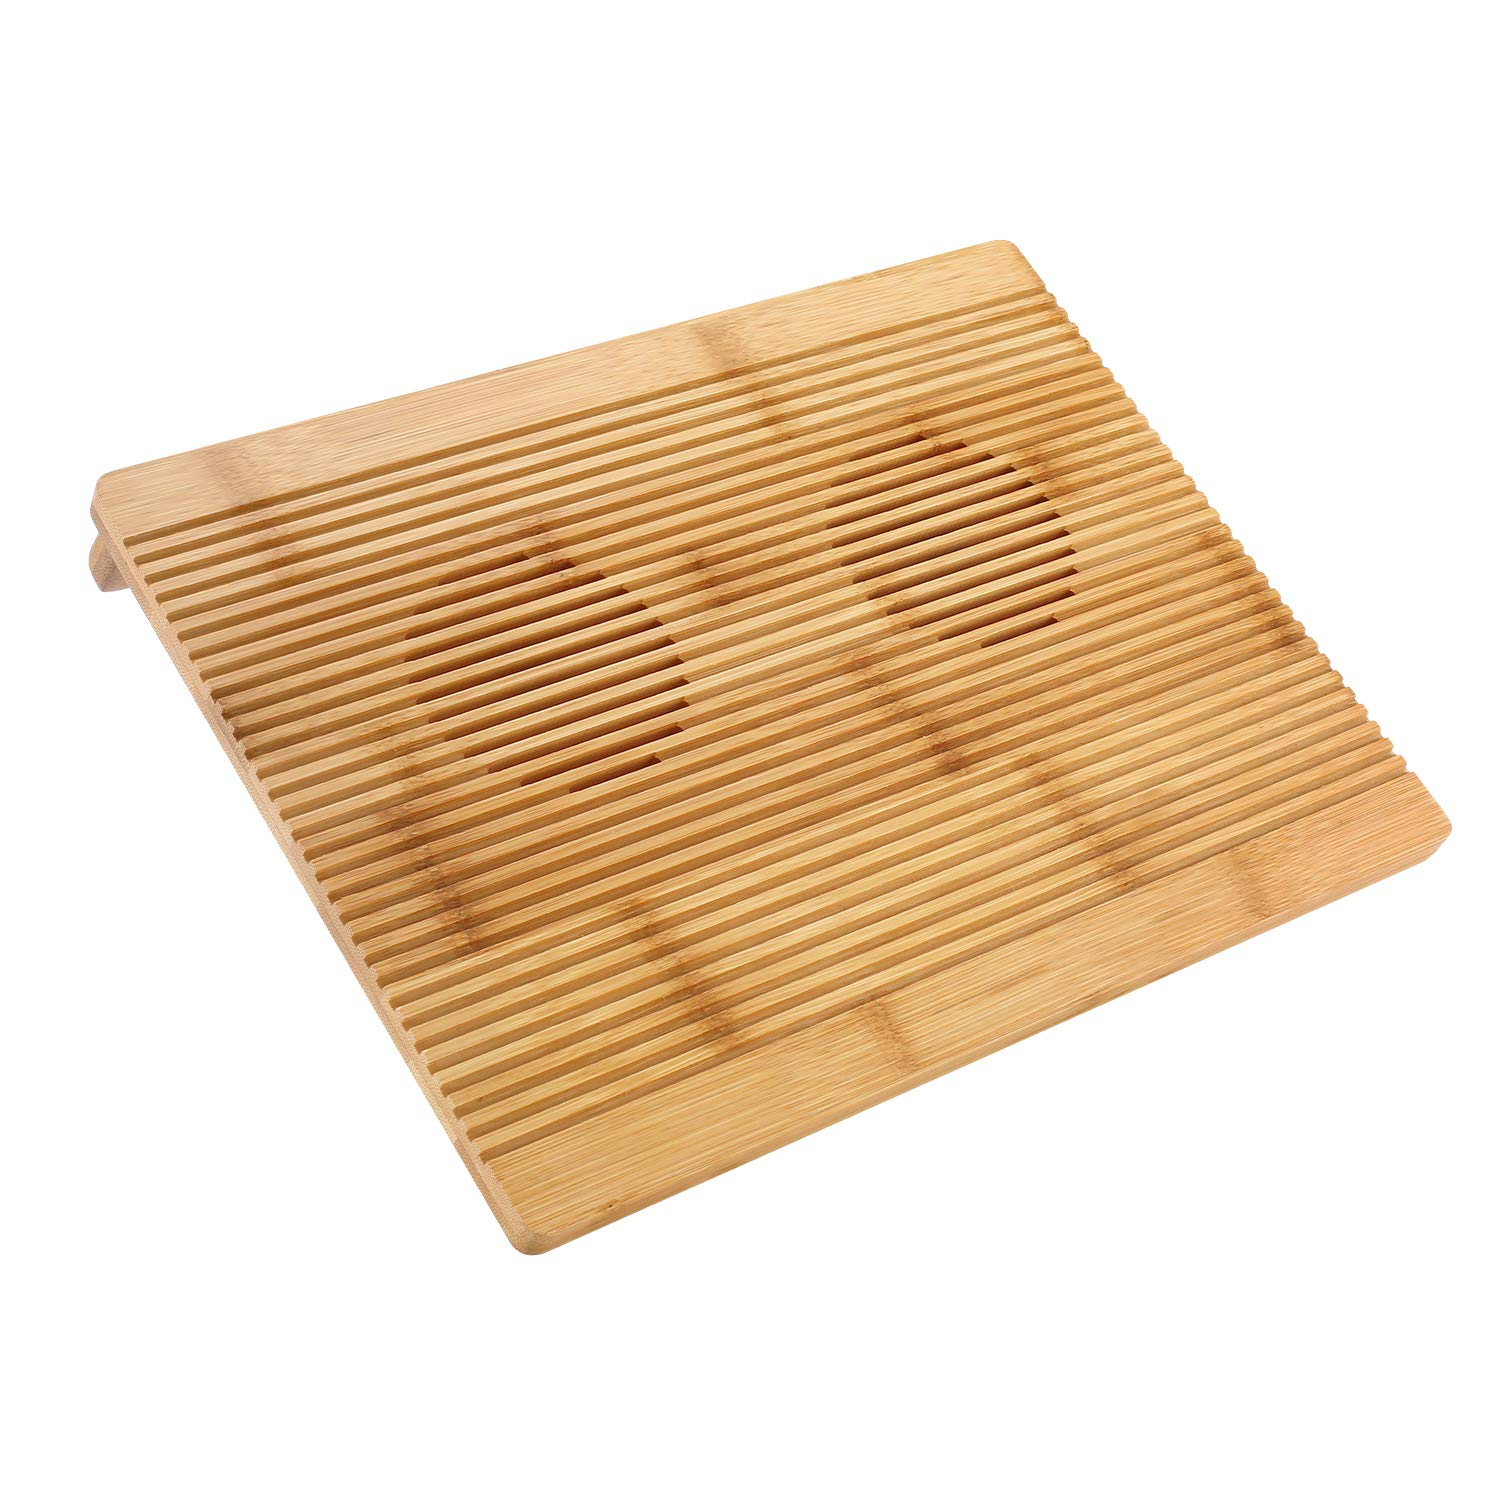 Laptop Stand Cooling Pad Nnewvante 100% Bamboo Laptop Cooler Pad Laptop Desk Laptop Table with Cooling Fans Stand for Laptops Notebooks